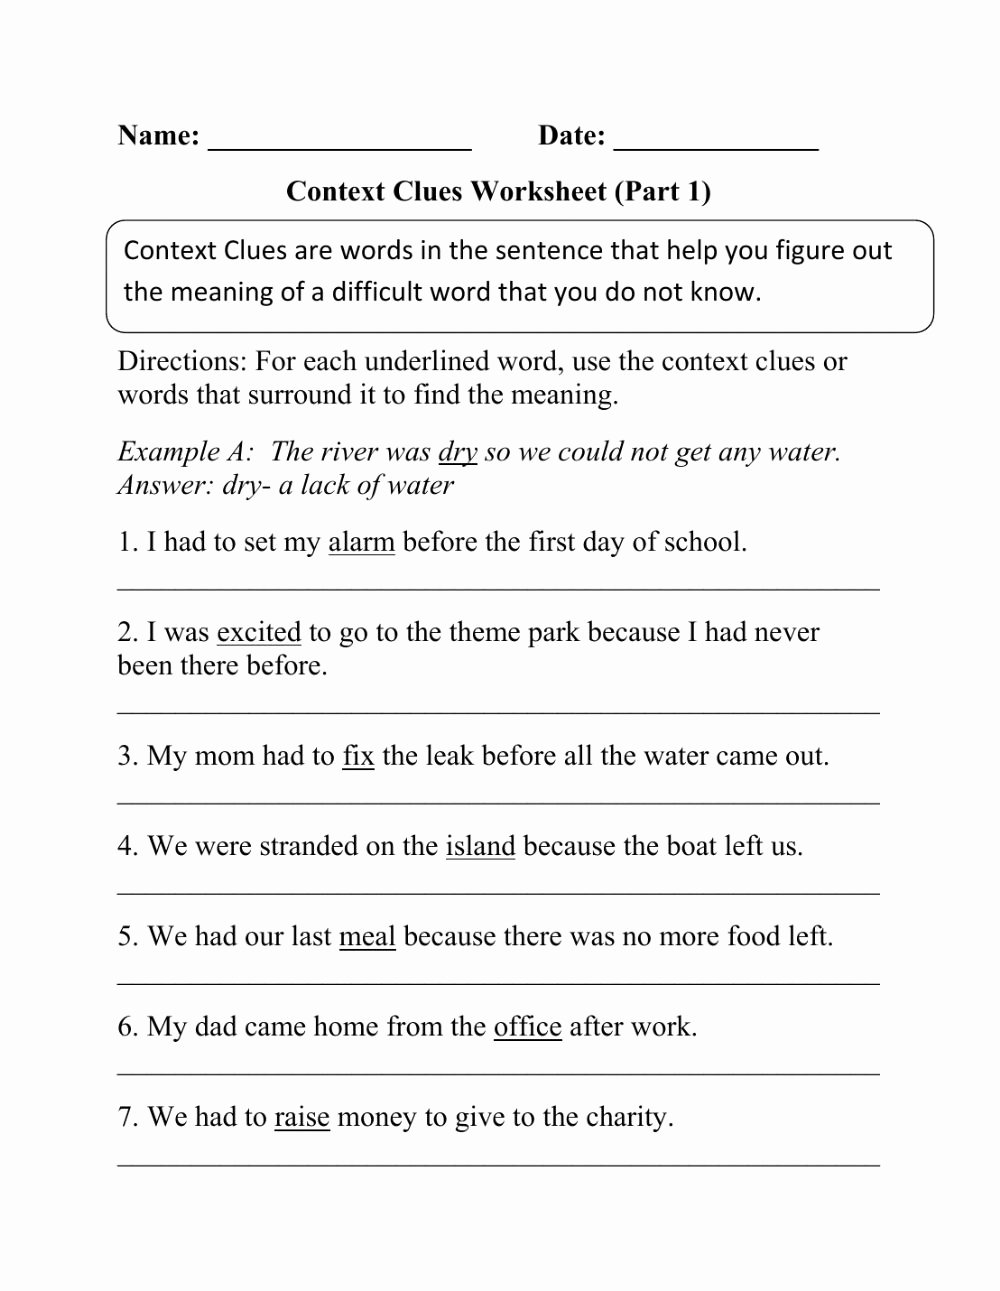 Context Clues Worksheets 6th Grade Lovely Reading Interactive Worksheet